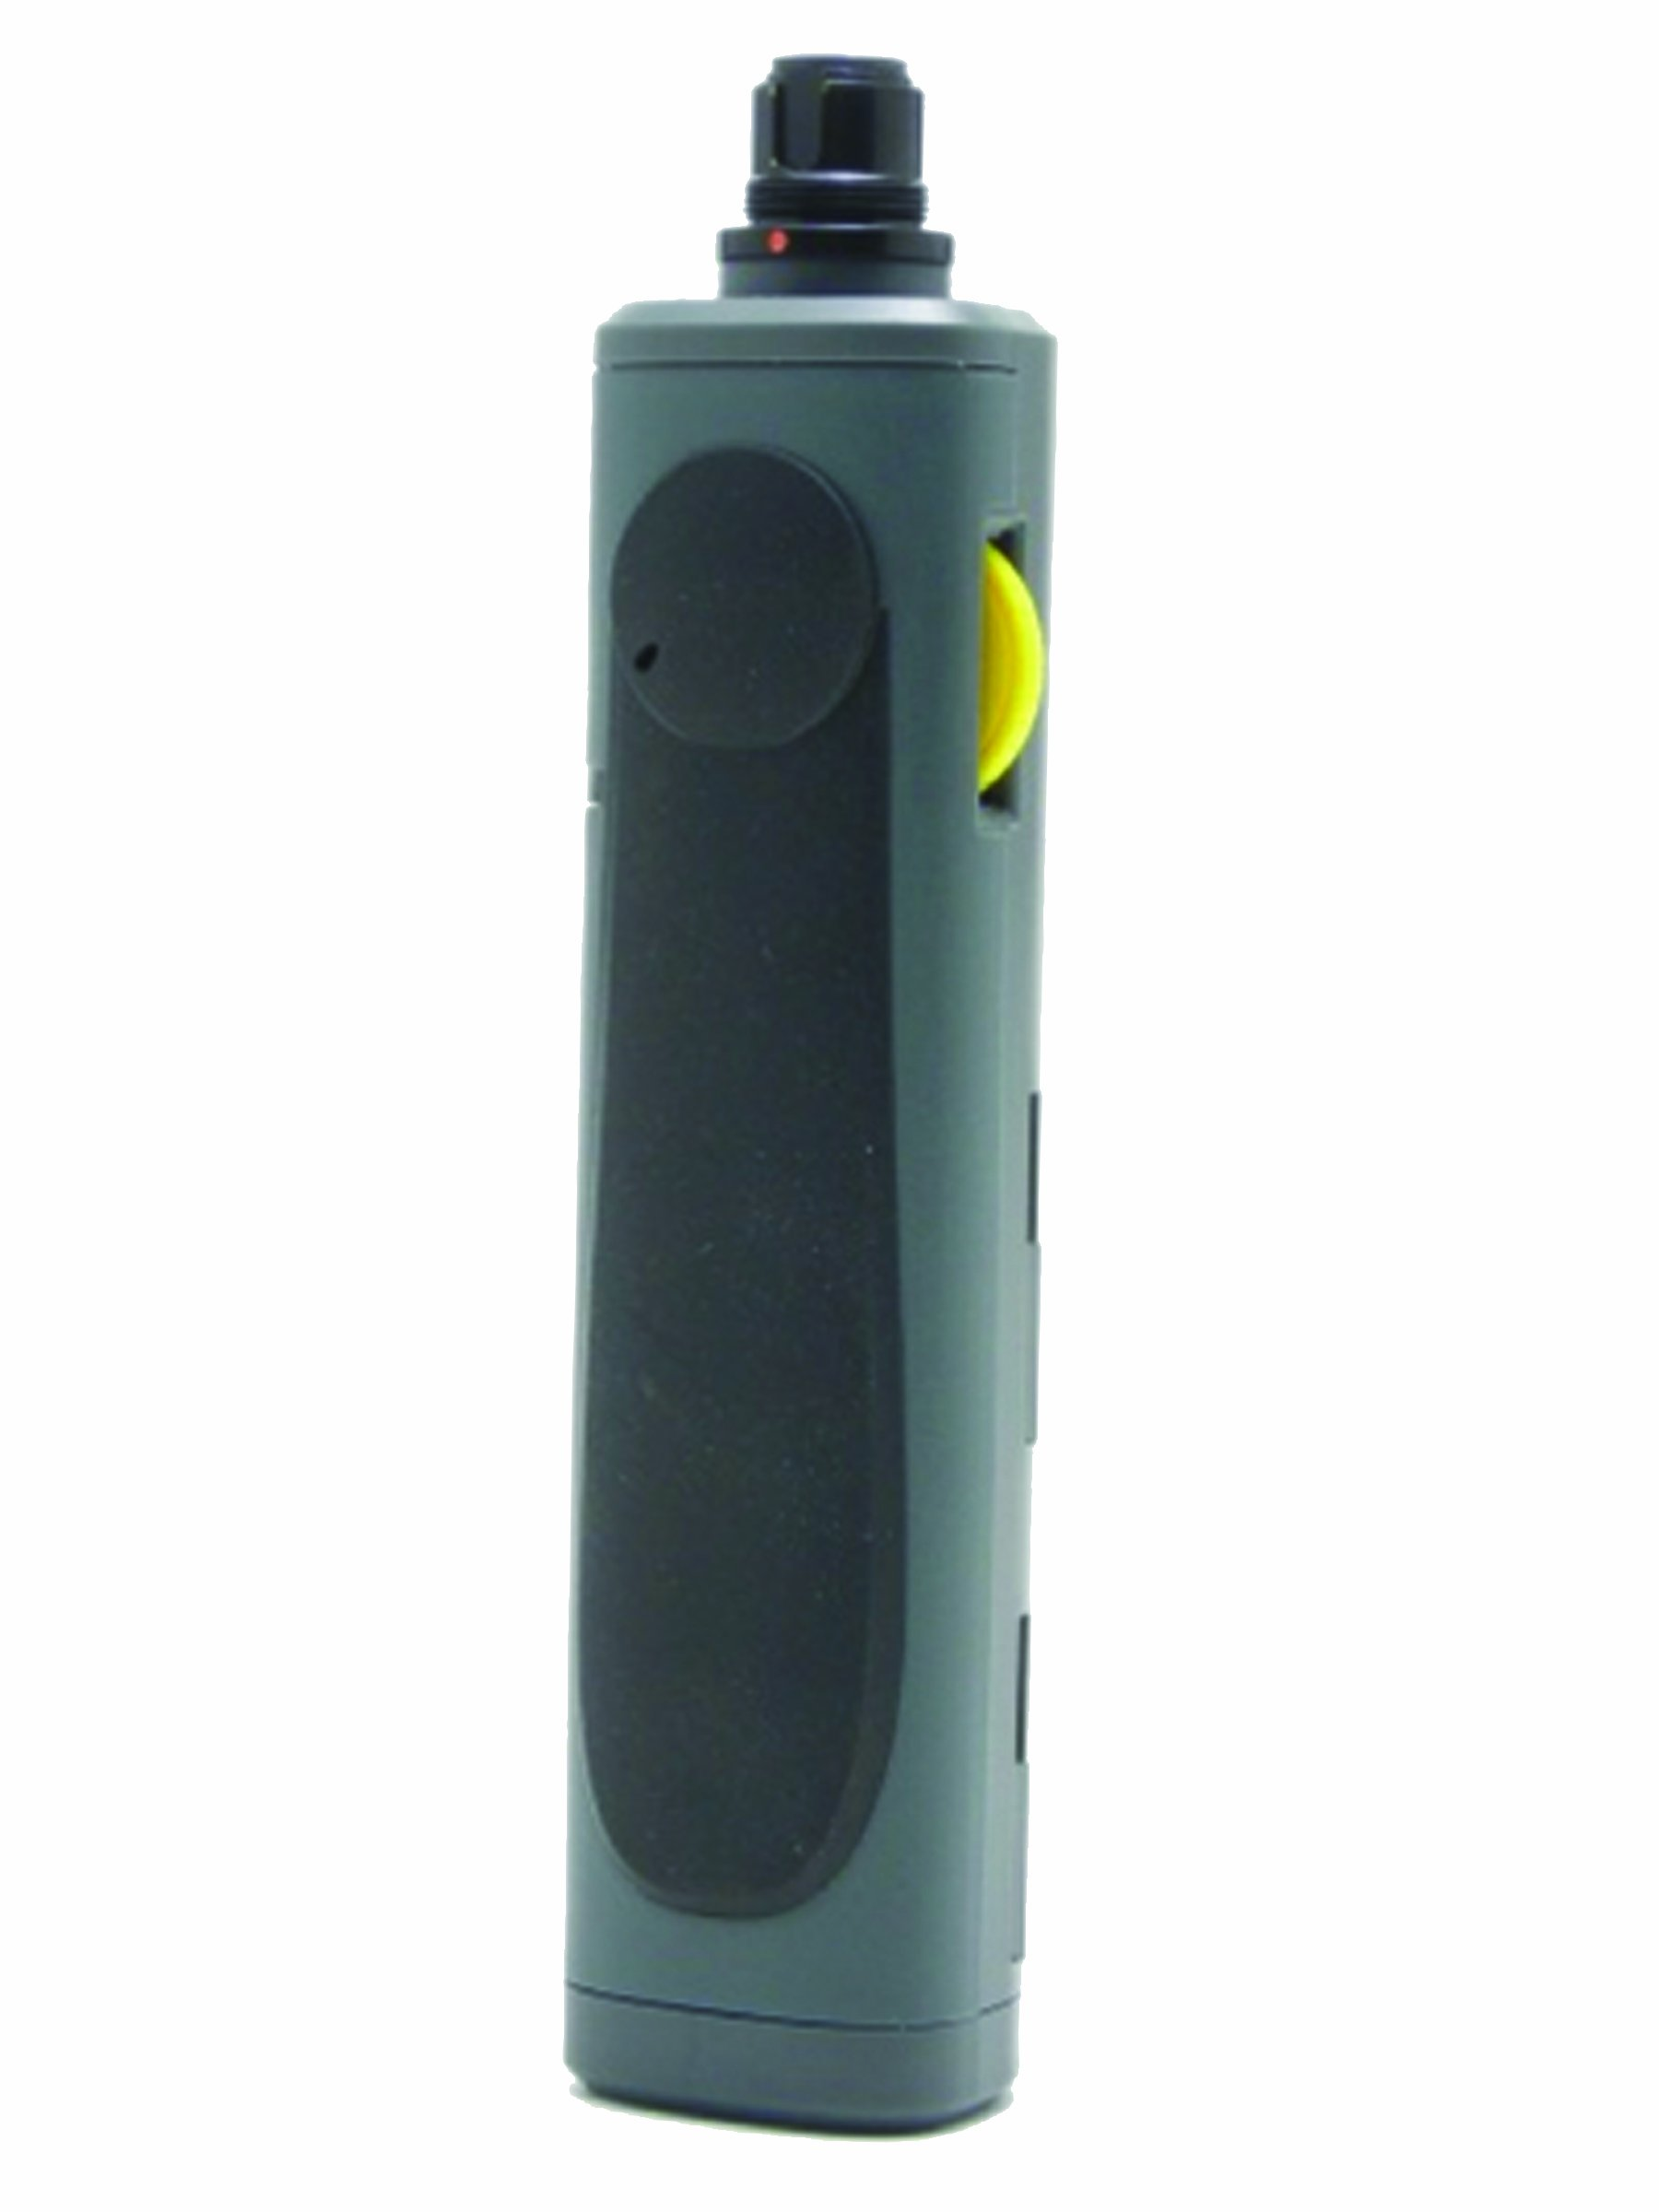 General Tools DCS1800-TR Wireless Handle/Transmitter for DCS1800, DCS1800ART Systems